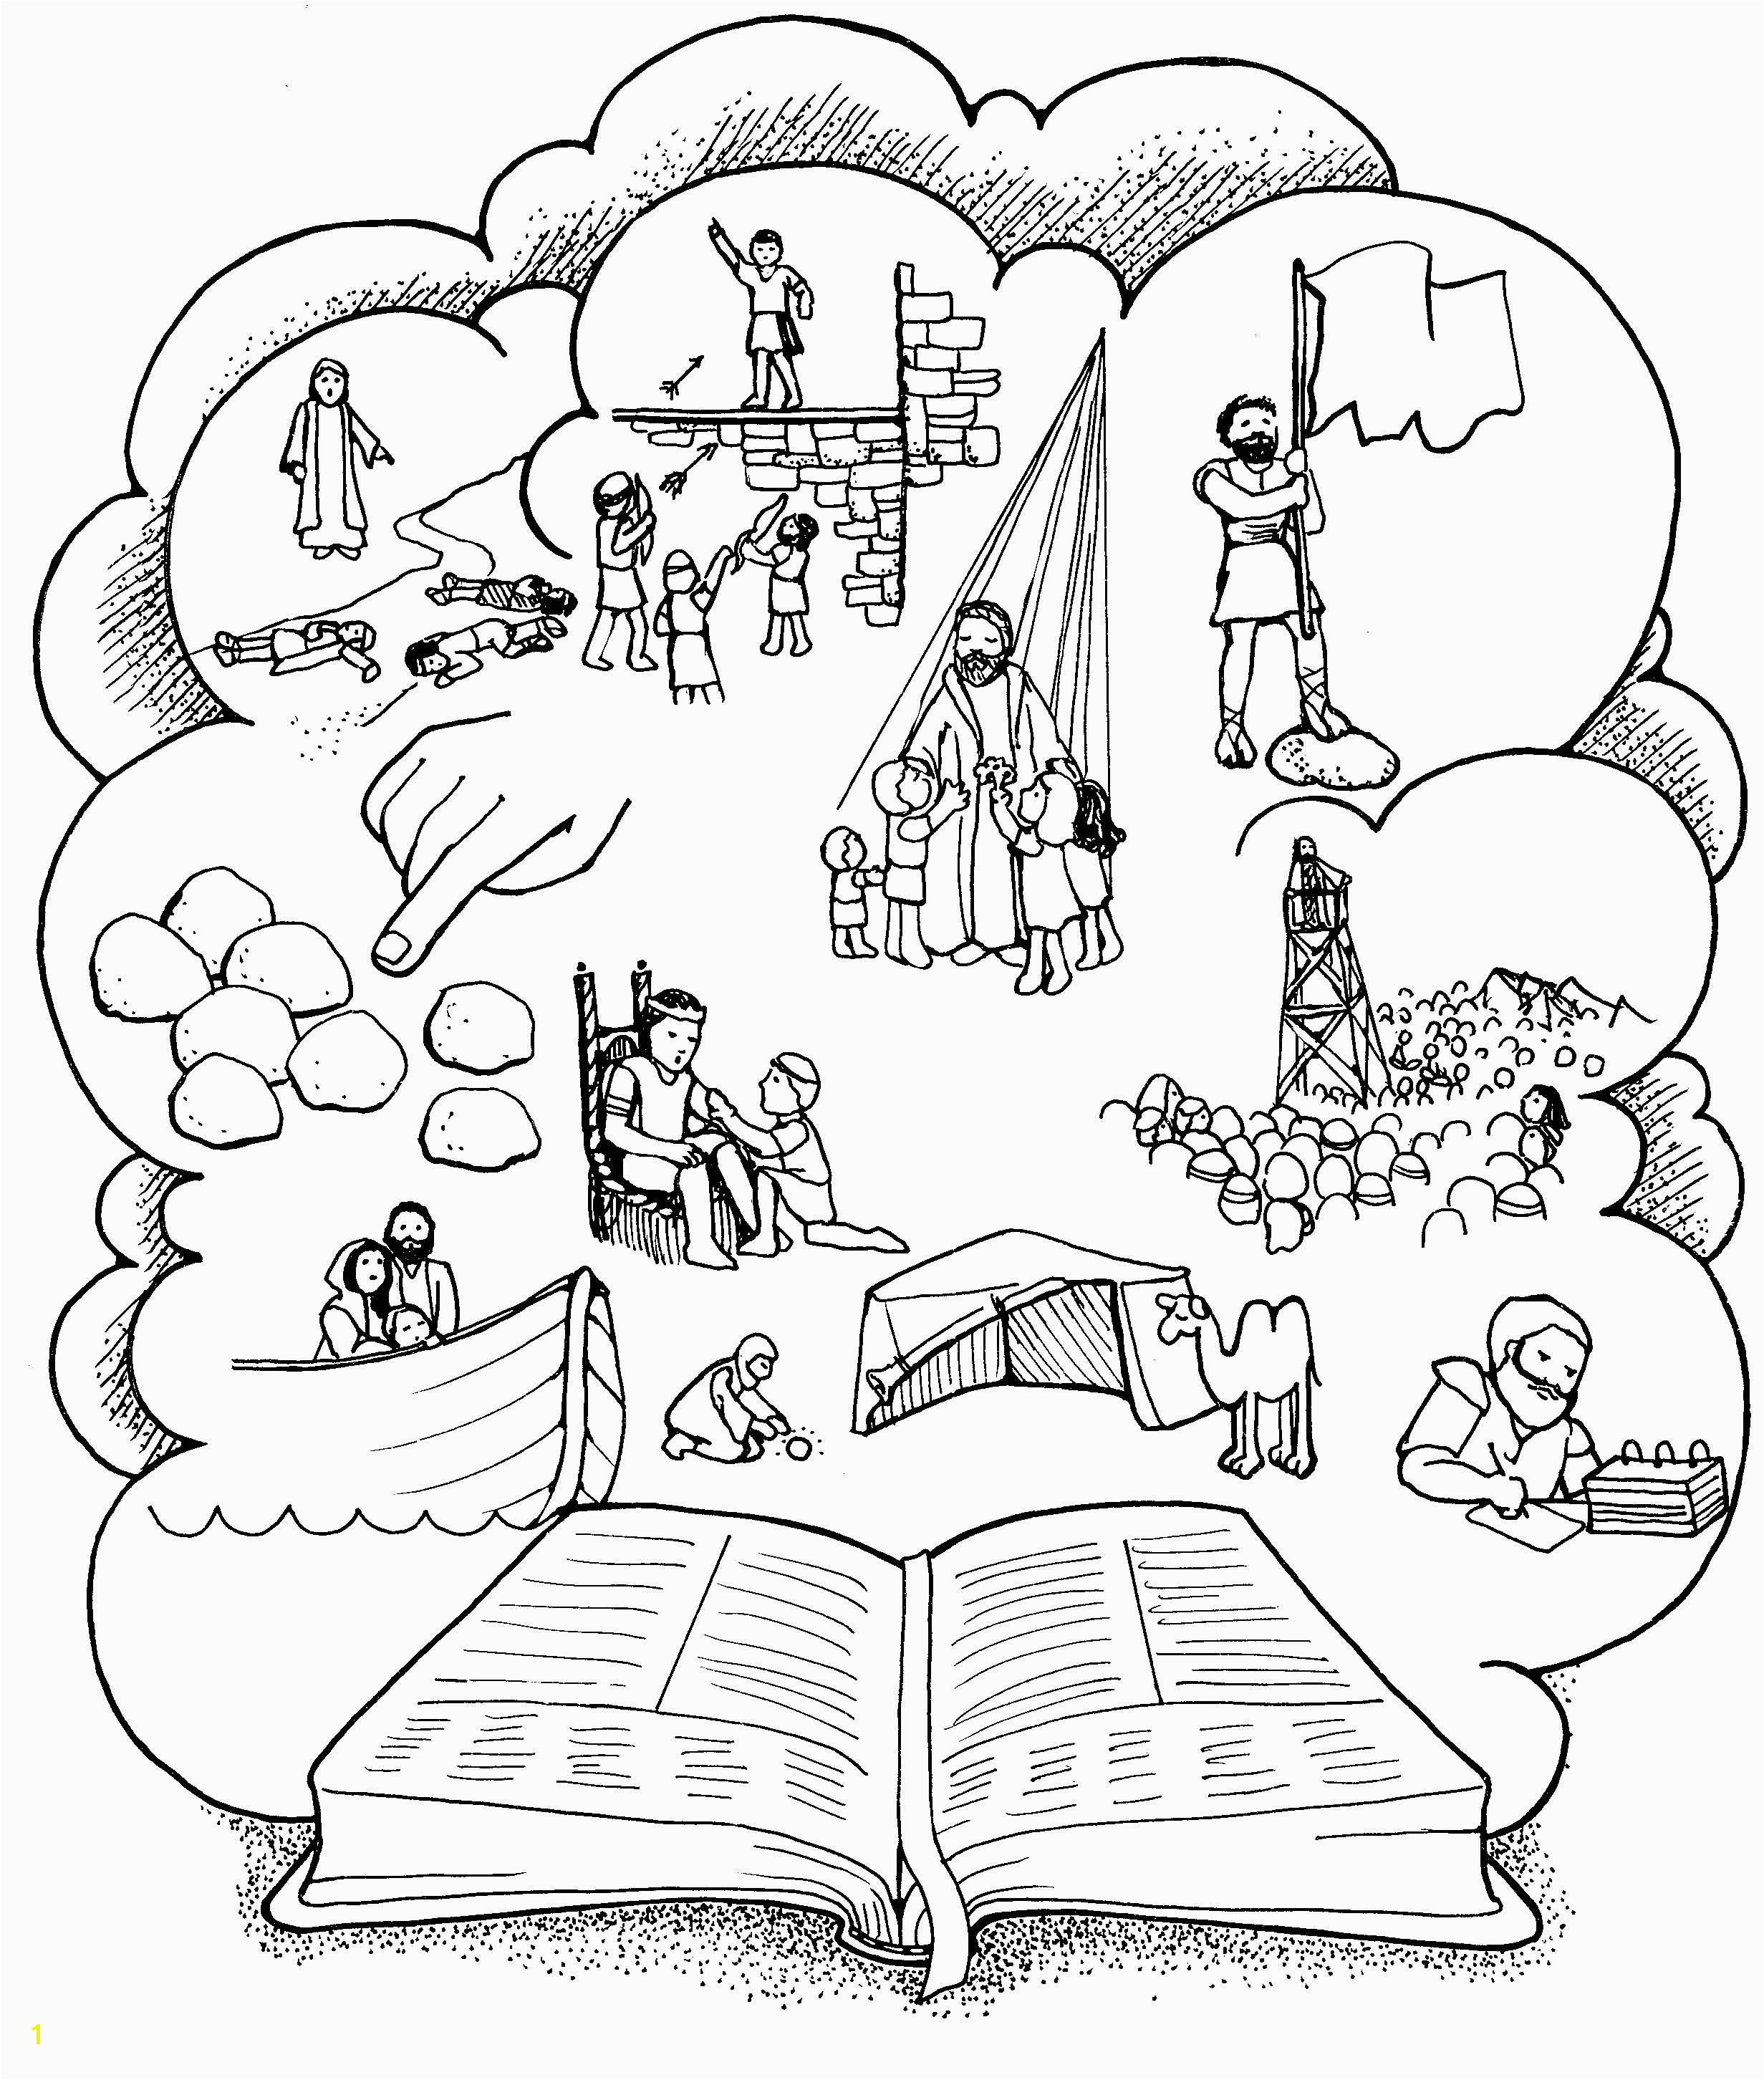 Kindergarten Coloring Pages Fresh Cool Coloring Page Unique Witch Coloring Pages New Crayola Pages 0d